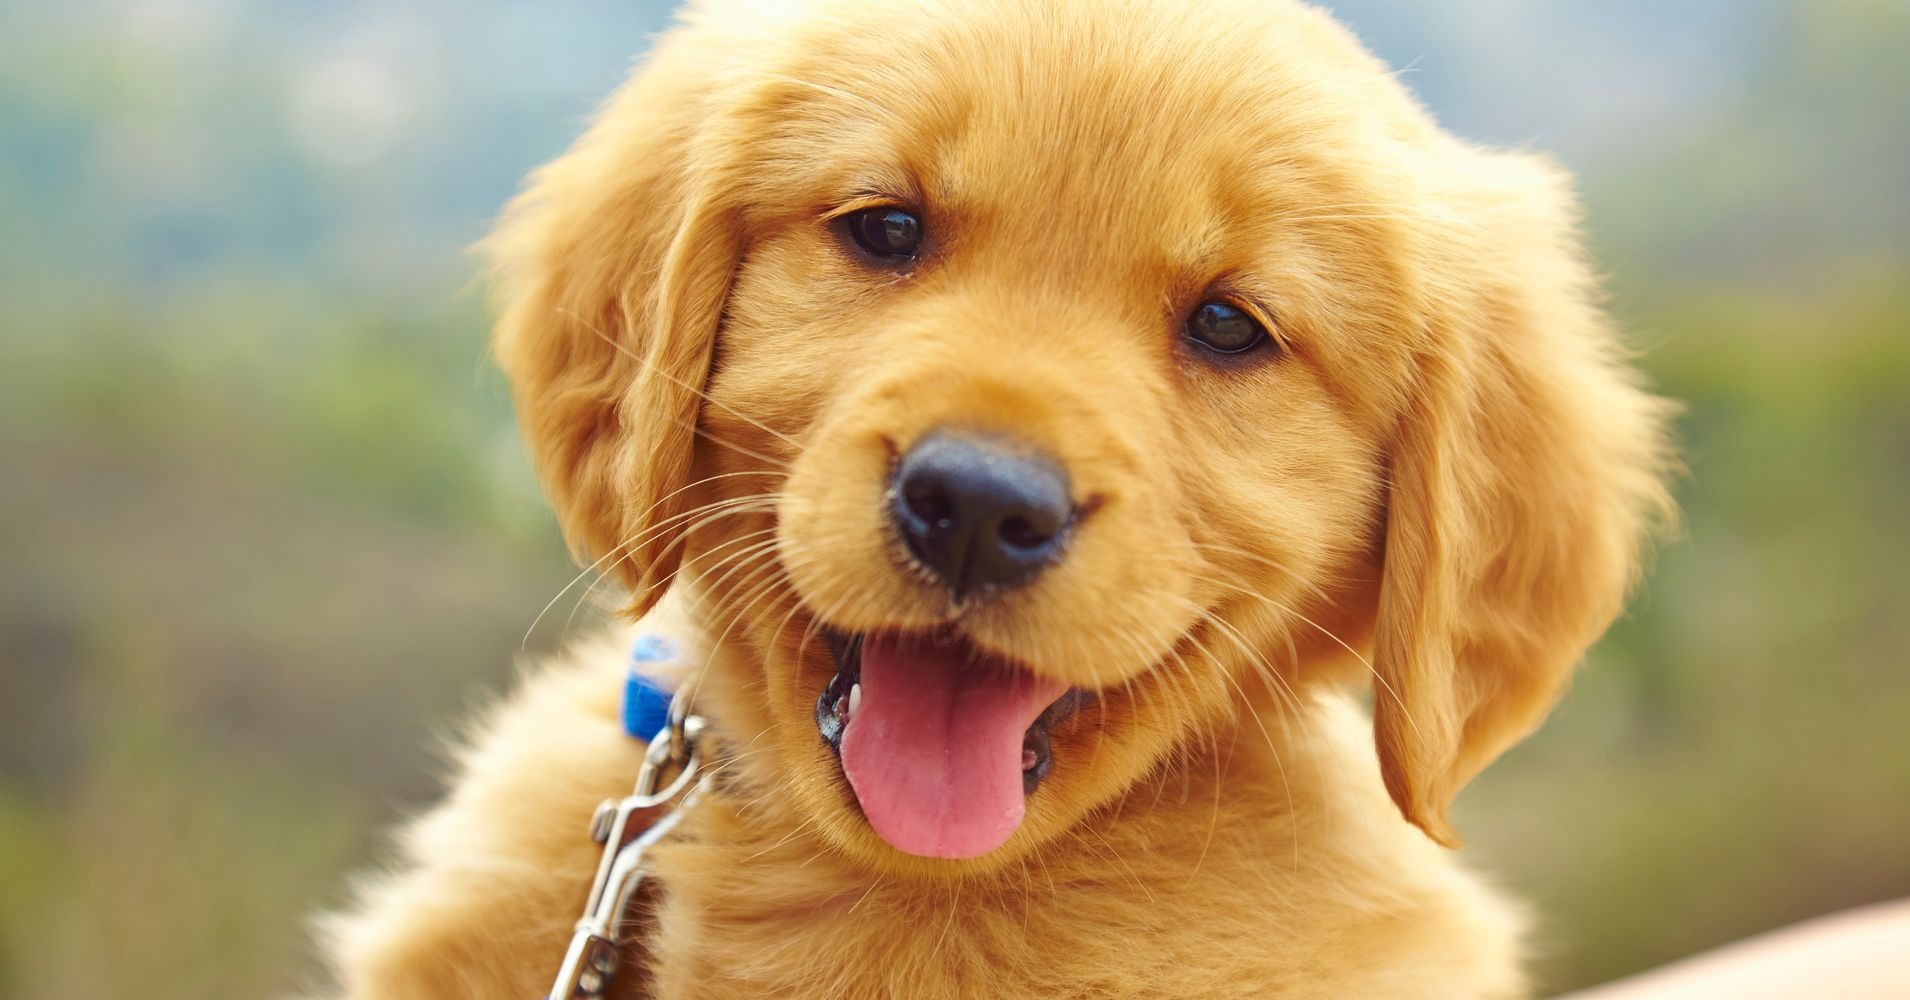 The Ridiculously Cute Dog Challenge To Distract You From All Doom And Gloom